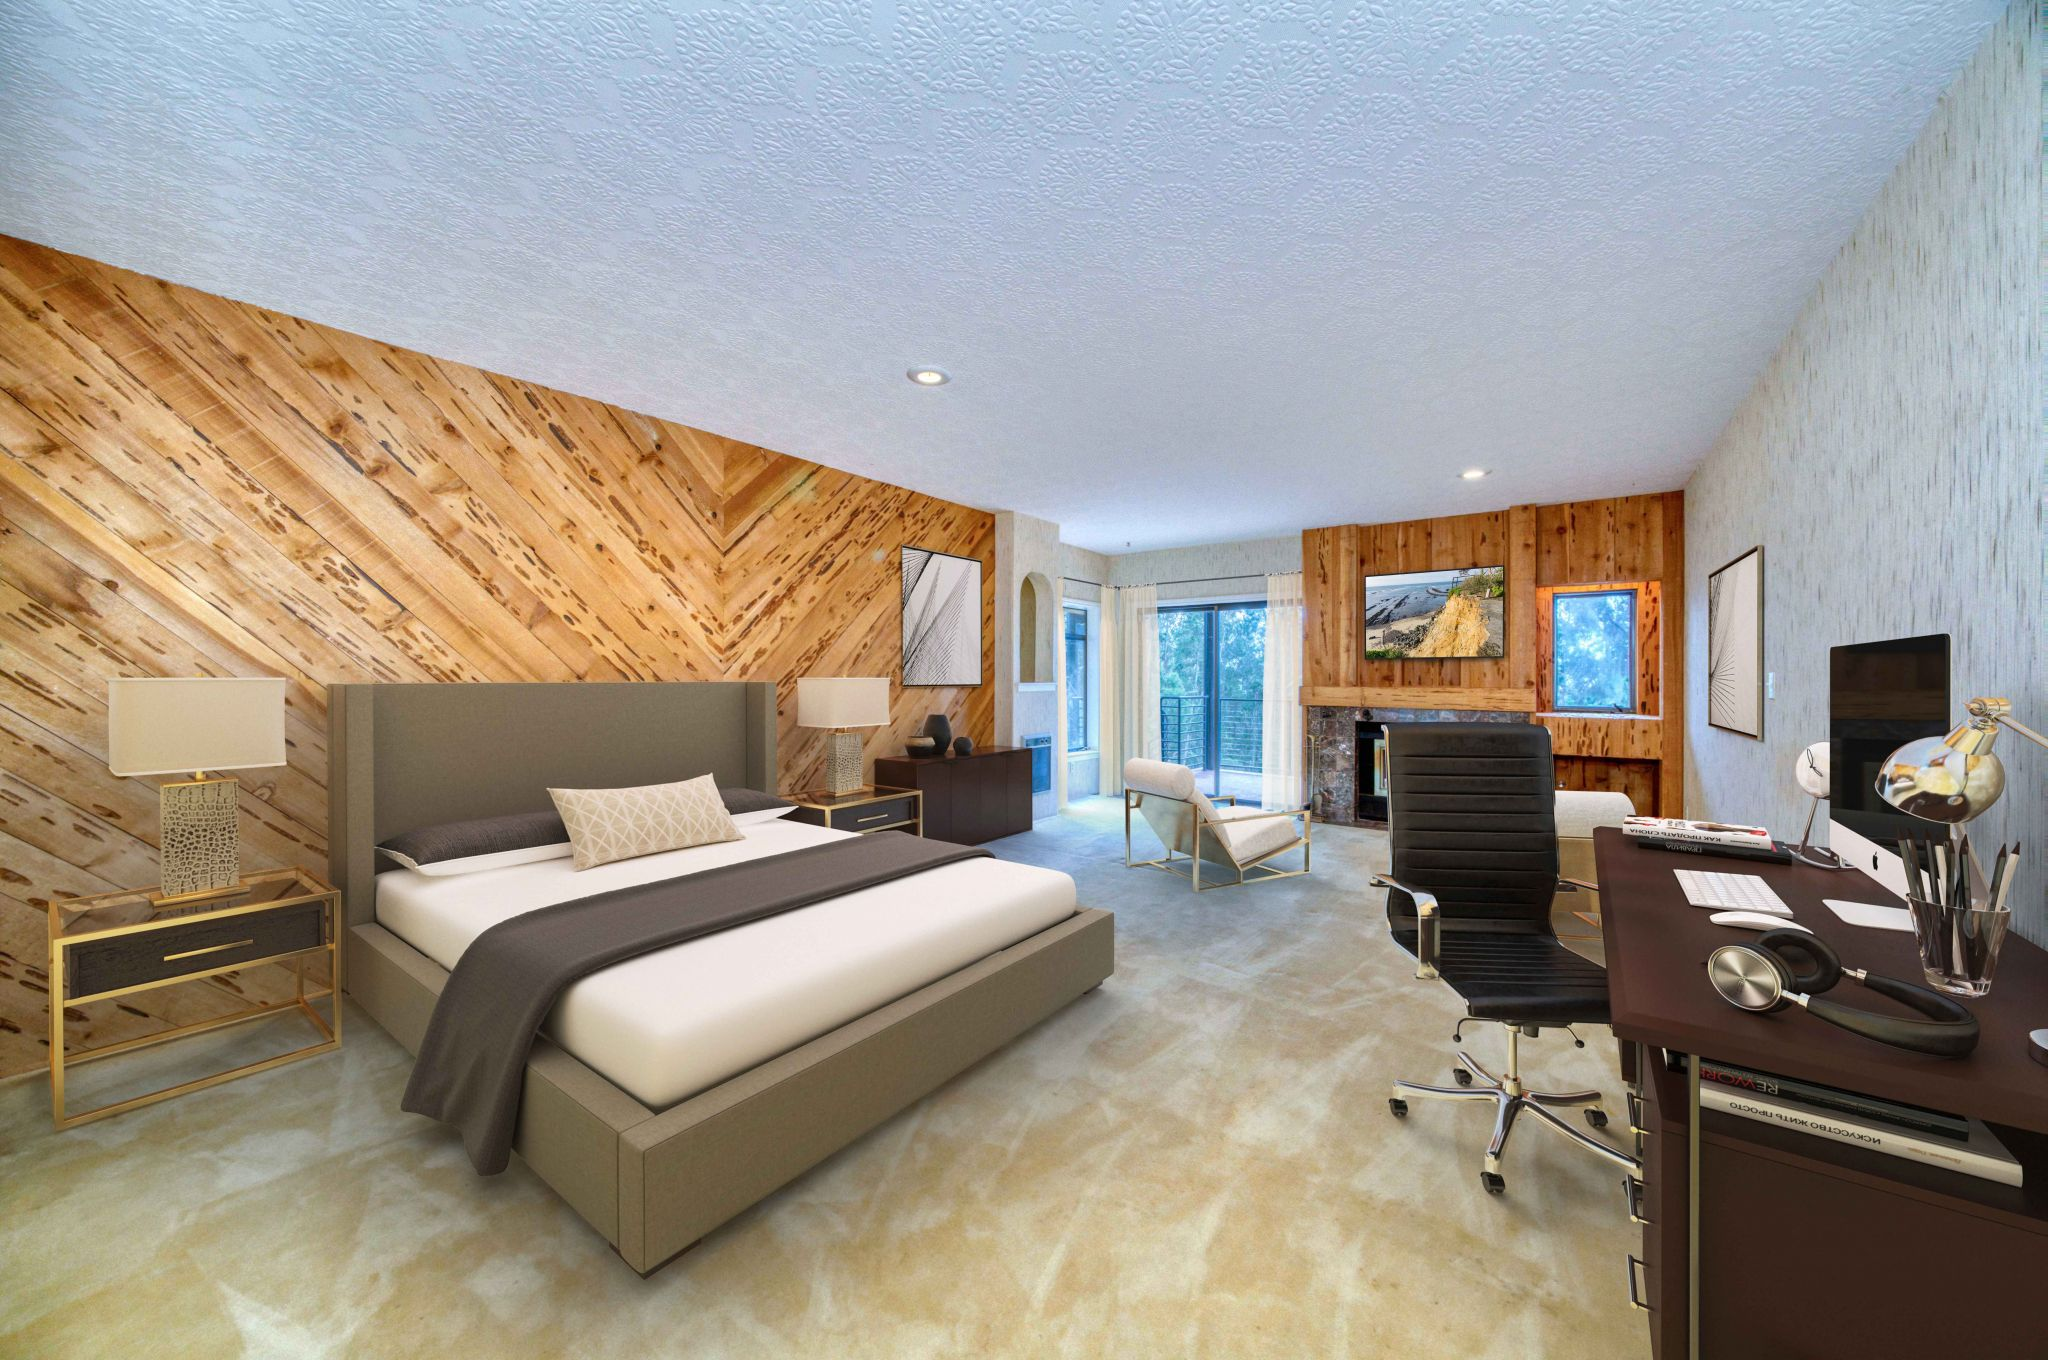 There are nine bedrooms in the home. The primary suite includes a reception area, conference room and study.